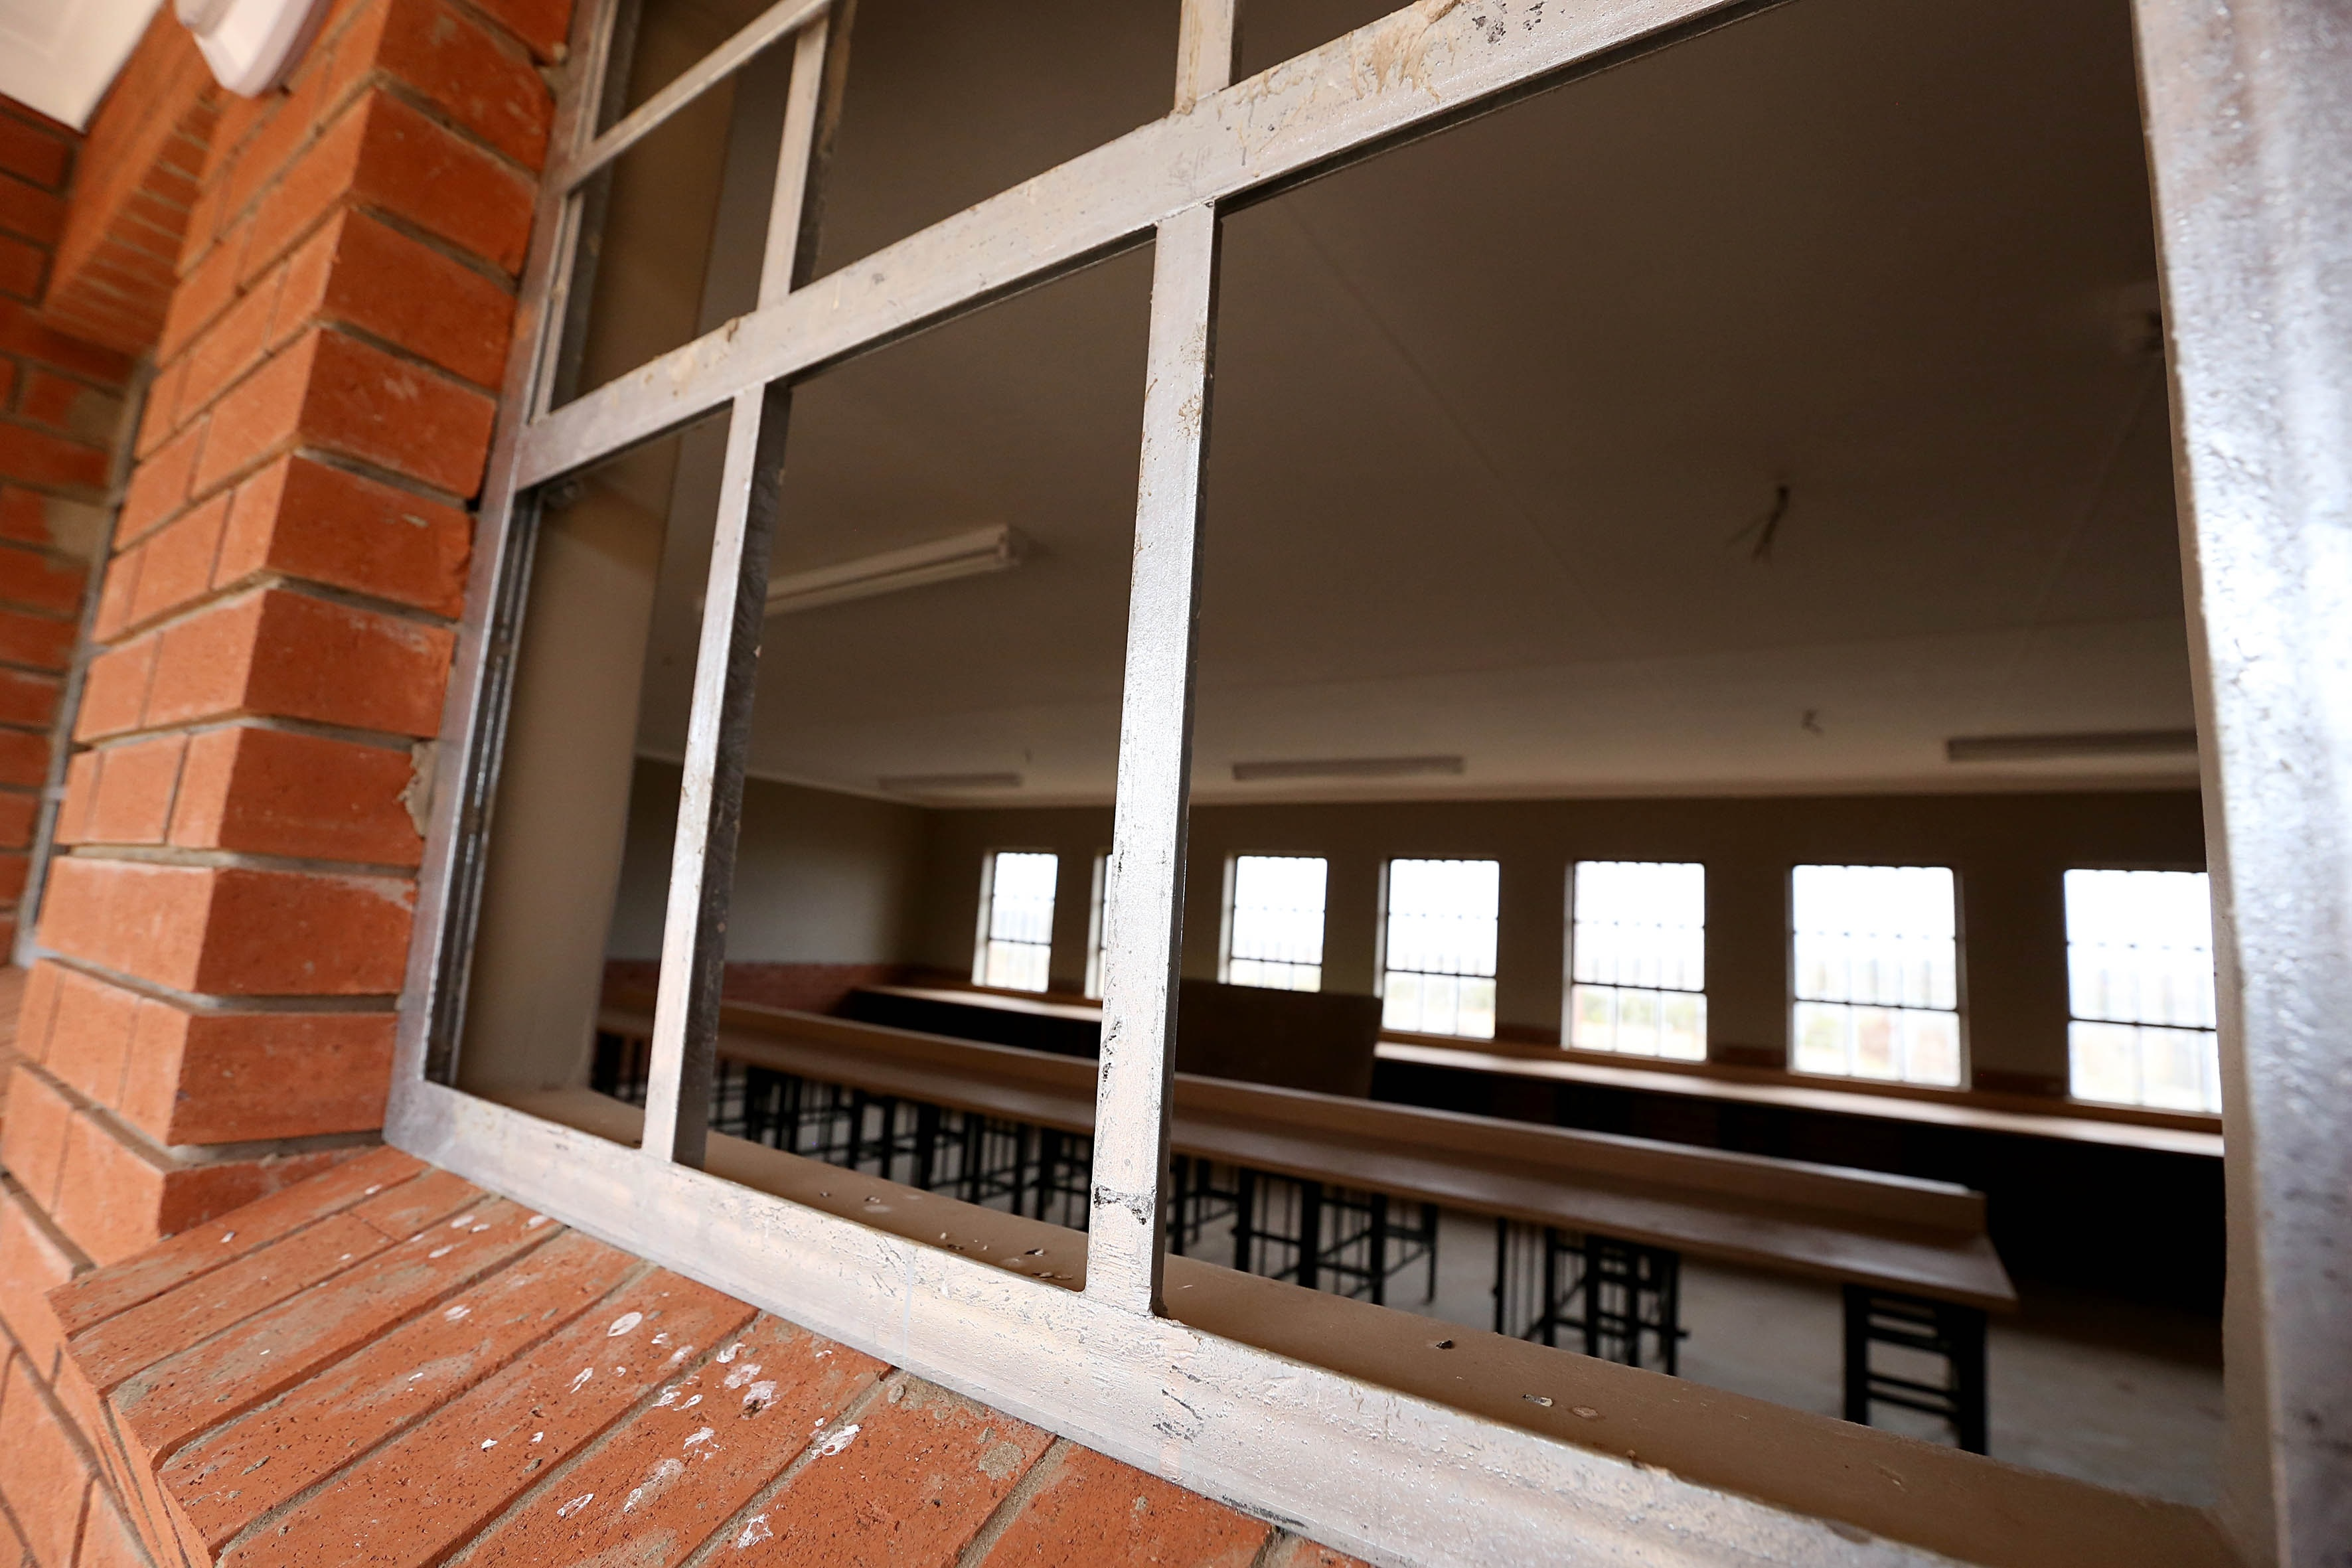 File: Research by Equal Education revealed that 29 schools in the province are entirely constructed of asbestos.